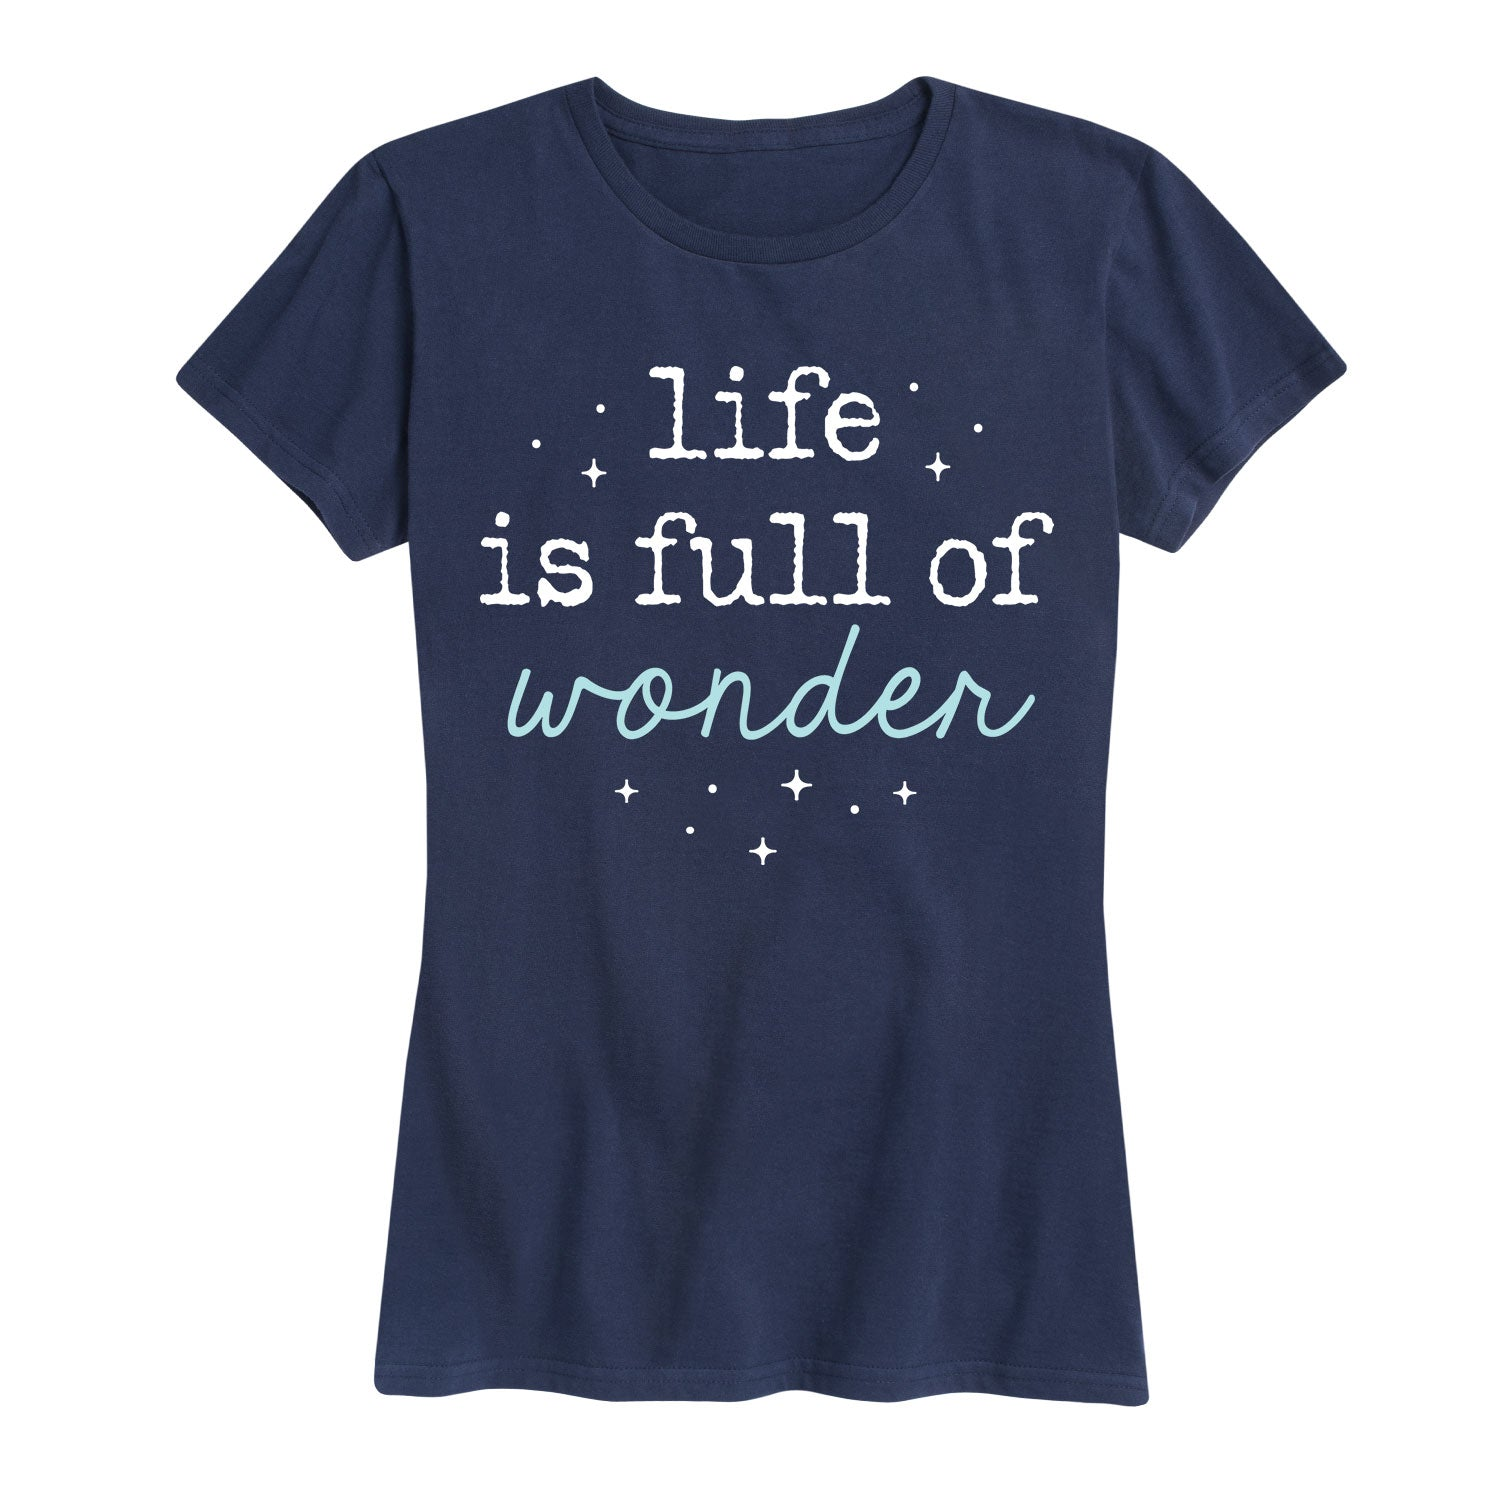 Life Full Of Wonder - Women's Short Sleeve T-Shirt